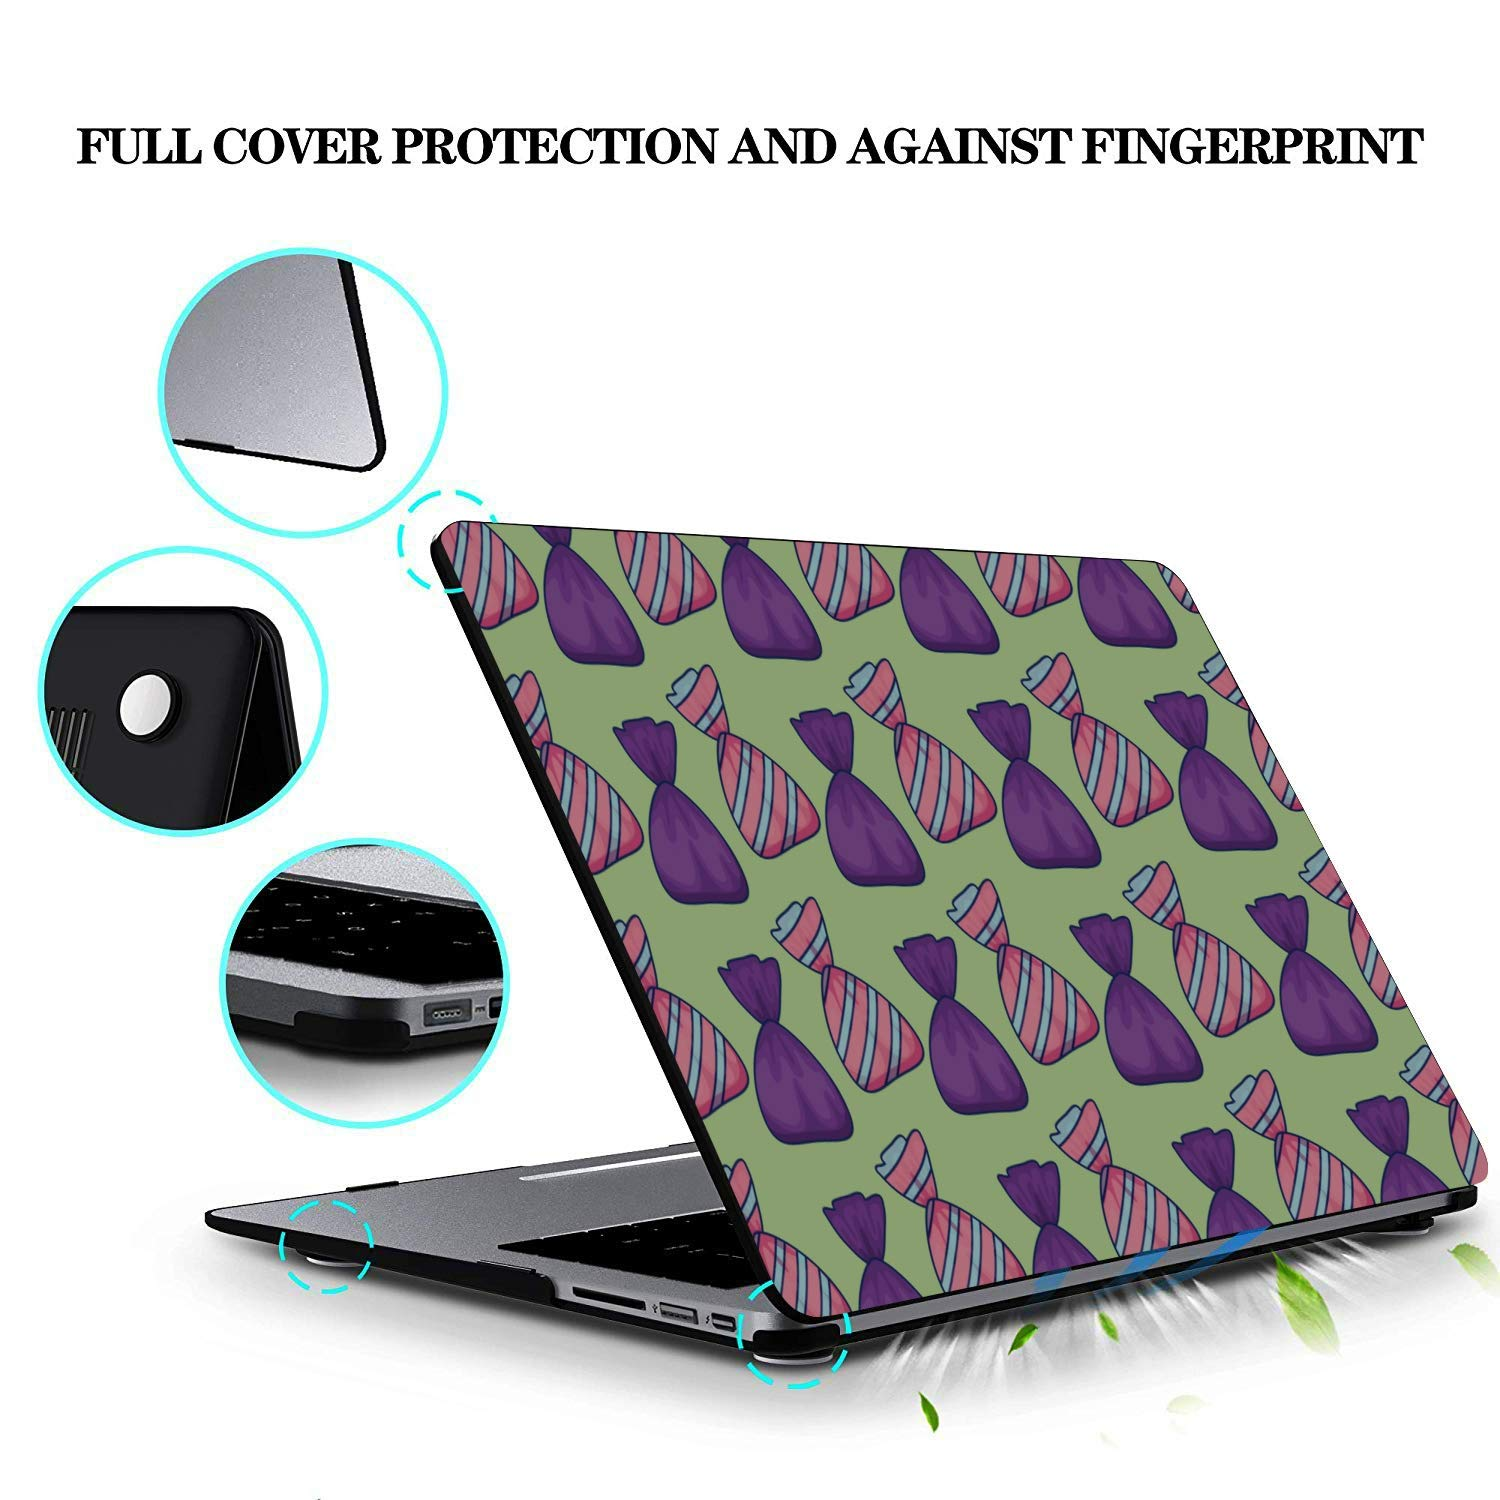 Mackbook Pro Case Sweet Children Colorful Candy Bag Plastic Hard Shell Compatible Mac Air 11 Pro 13 15 MacBook Air Computer Case Protection for MacBook 2016-2019 Version